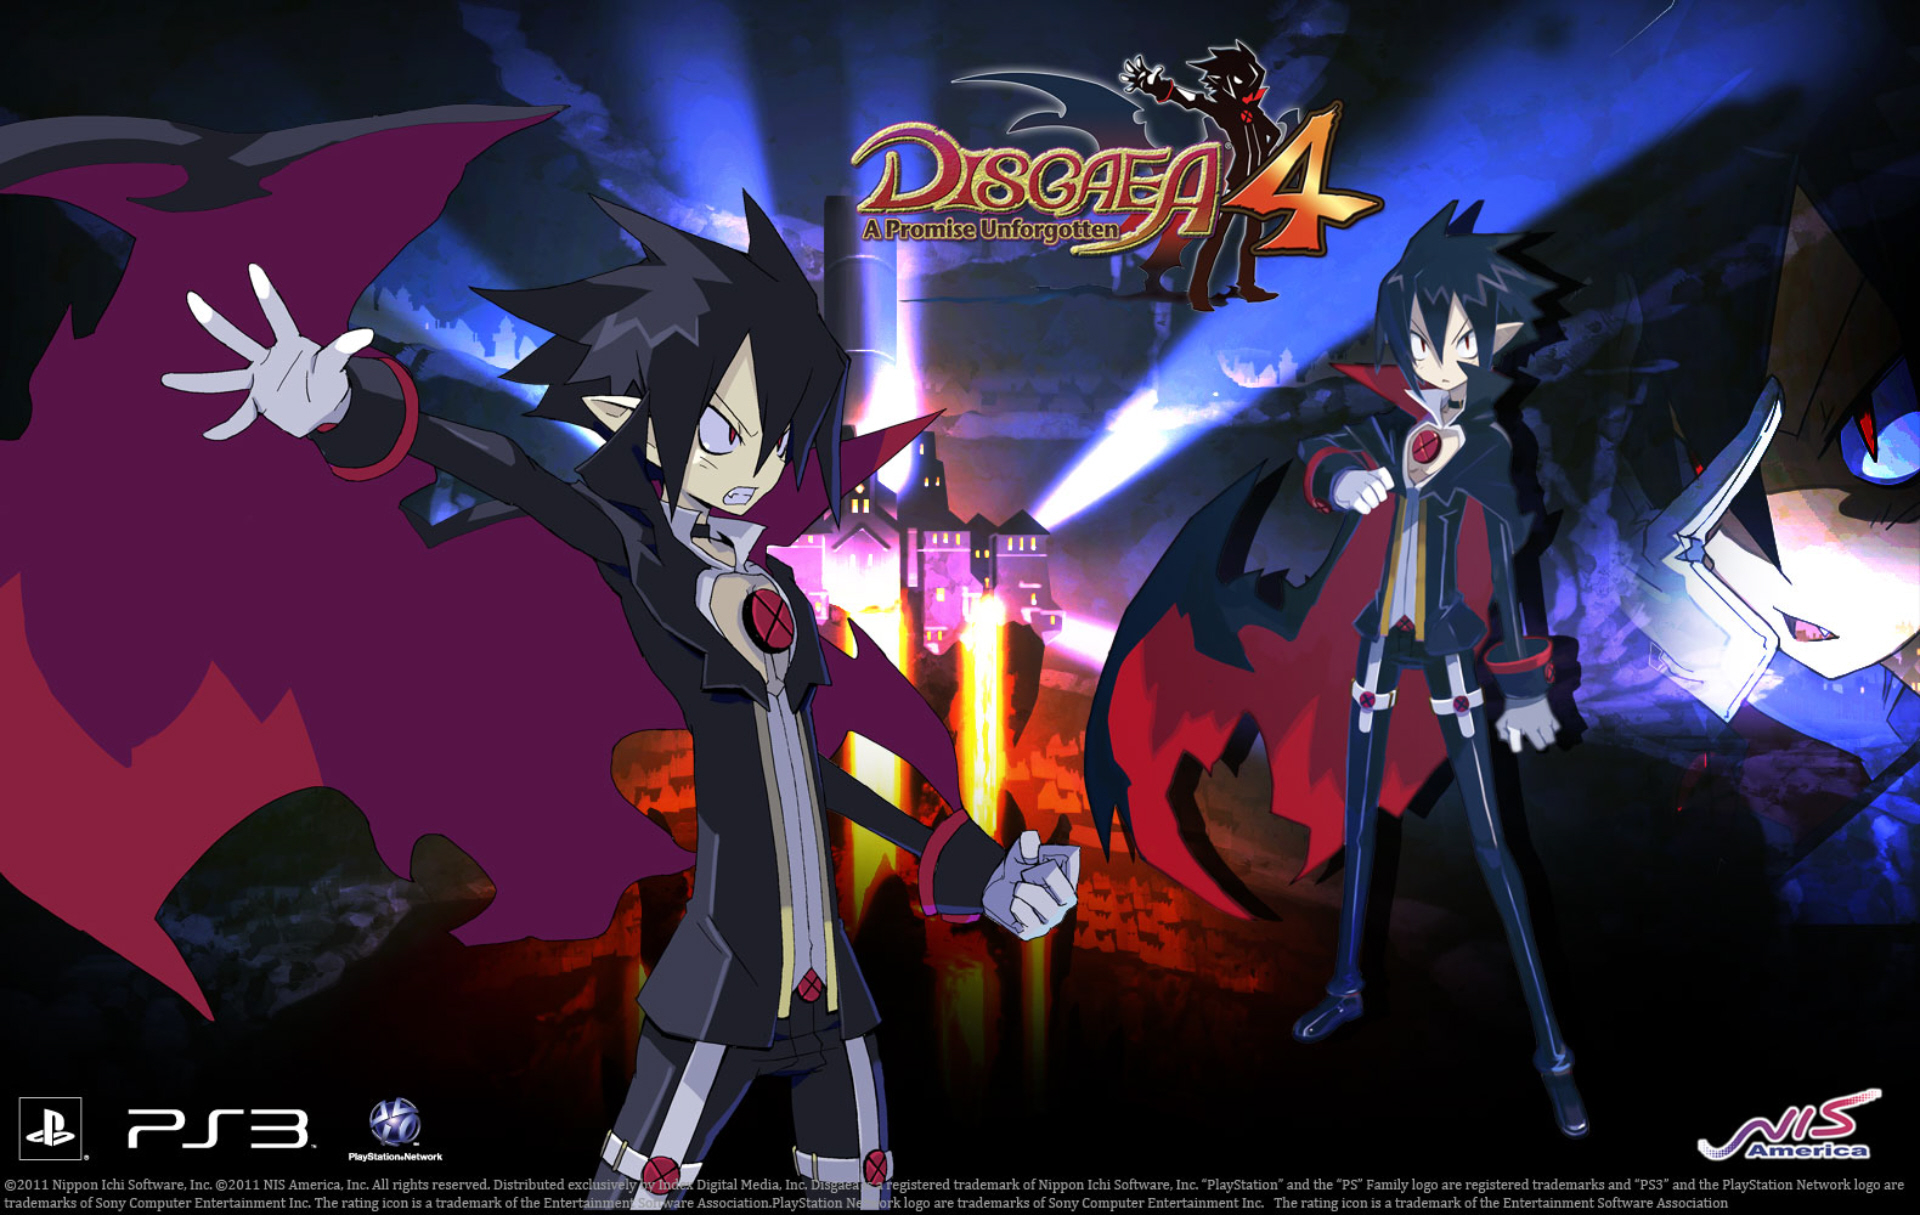 Disgaea 4 Wallpaper (HD)